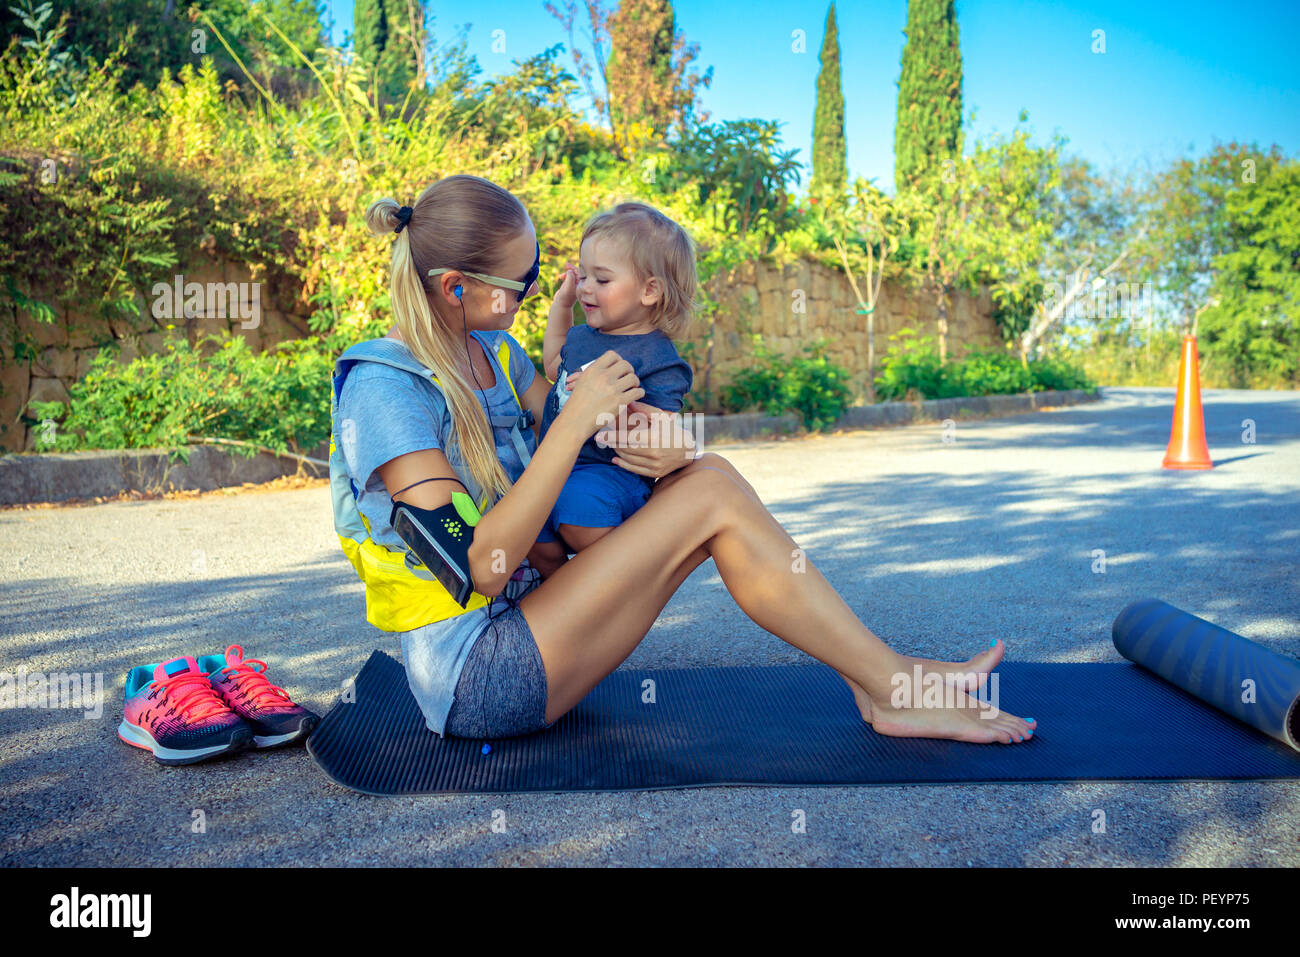 Mother with baby doing exercise outdoors in the park in bright sunny day, happy family together playing sports, healthy active life - Stock Image